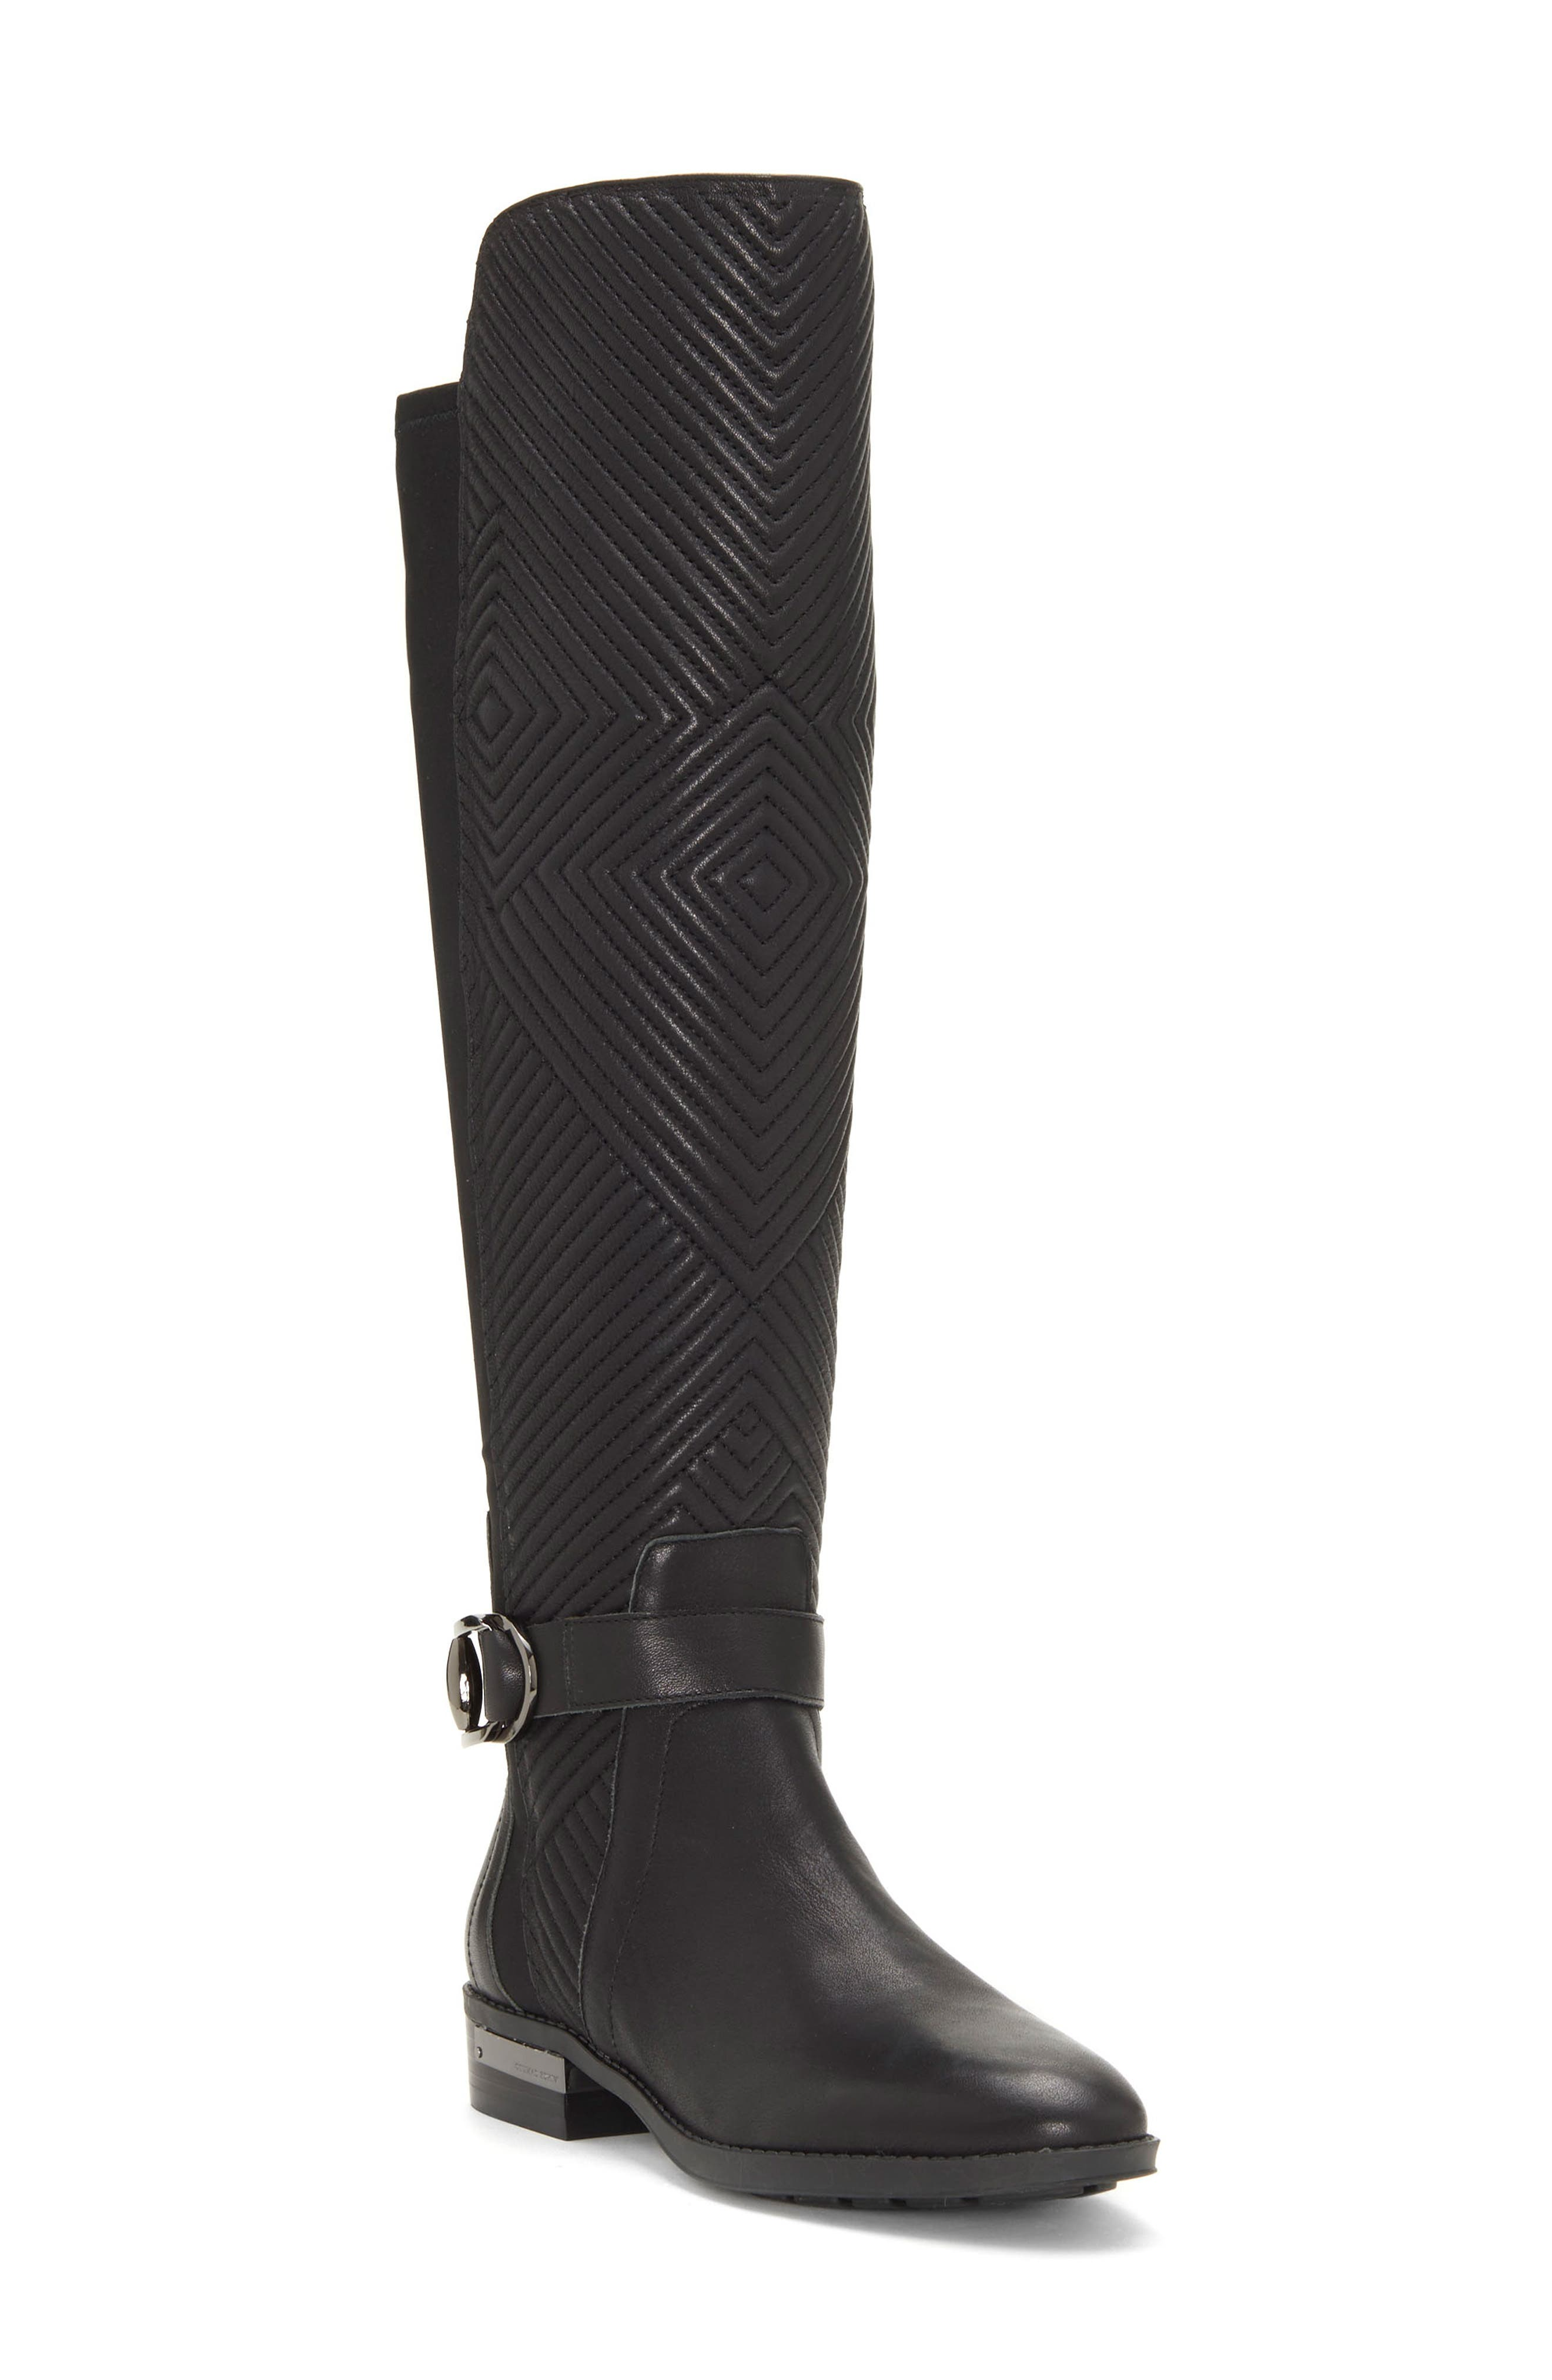 Pordalia Over-the-Knee Boot,                         Main,                         color, BLACK LEATHER WIDE